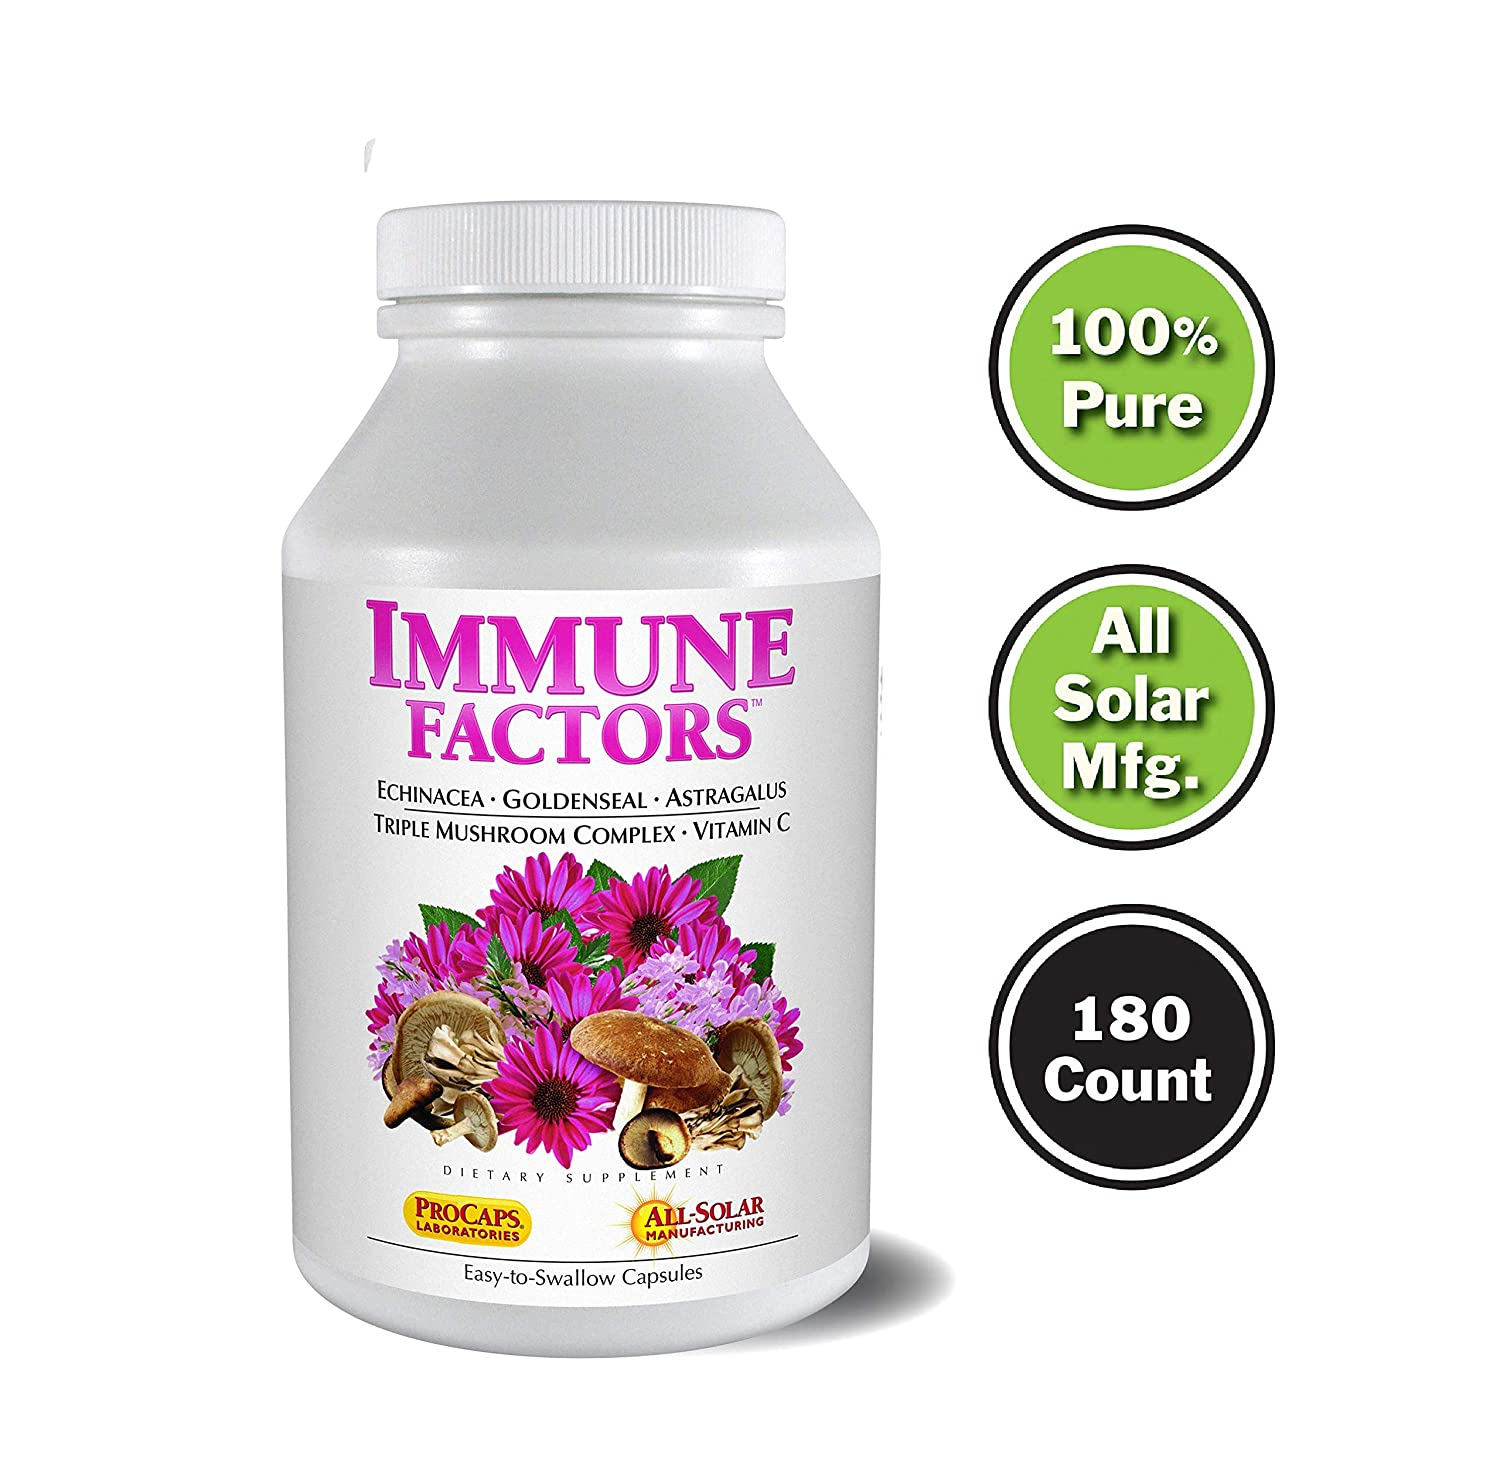 Andrew Lessman Immune Factors 180 Capsules – Echinacea, Goldenseal, Vitamin C, Astragalus, Supports and Promotes Immune System and Natural Defenses, No Additives. Small Easy to Swallow Capsules